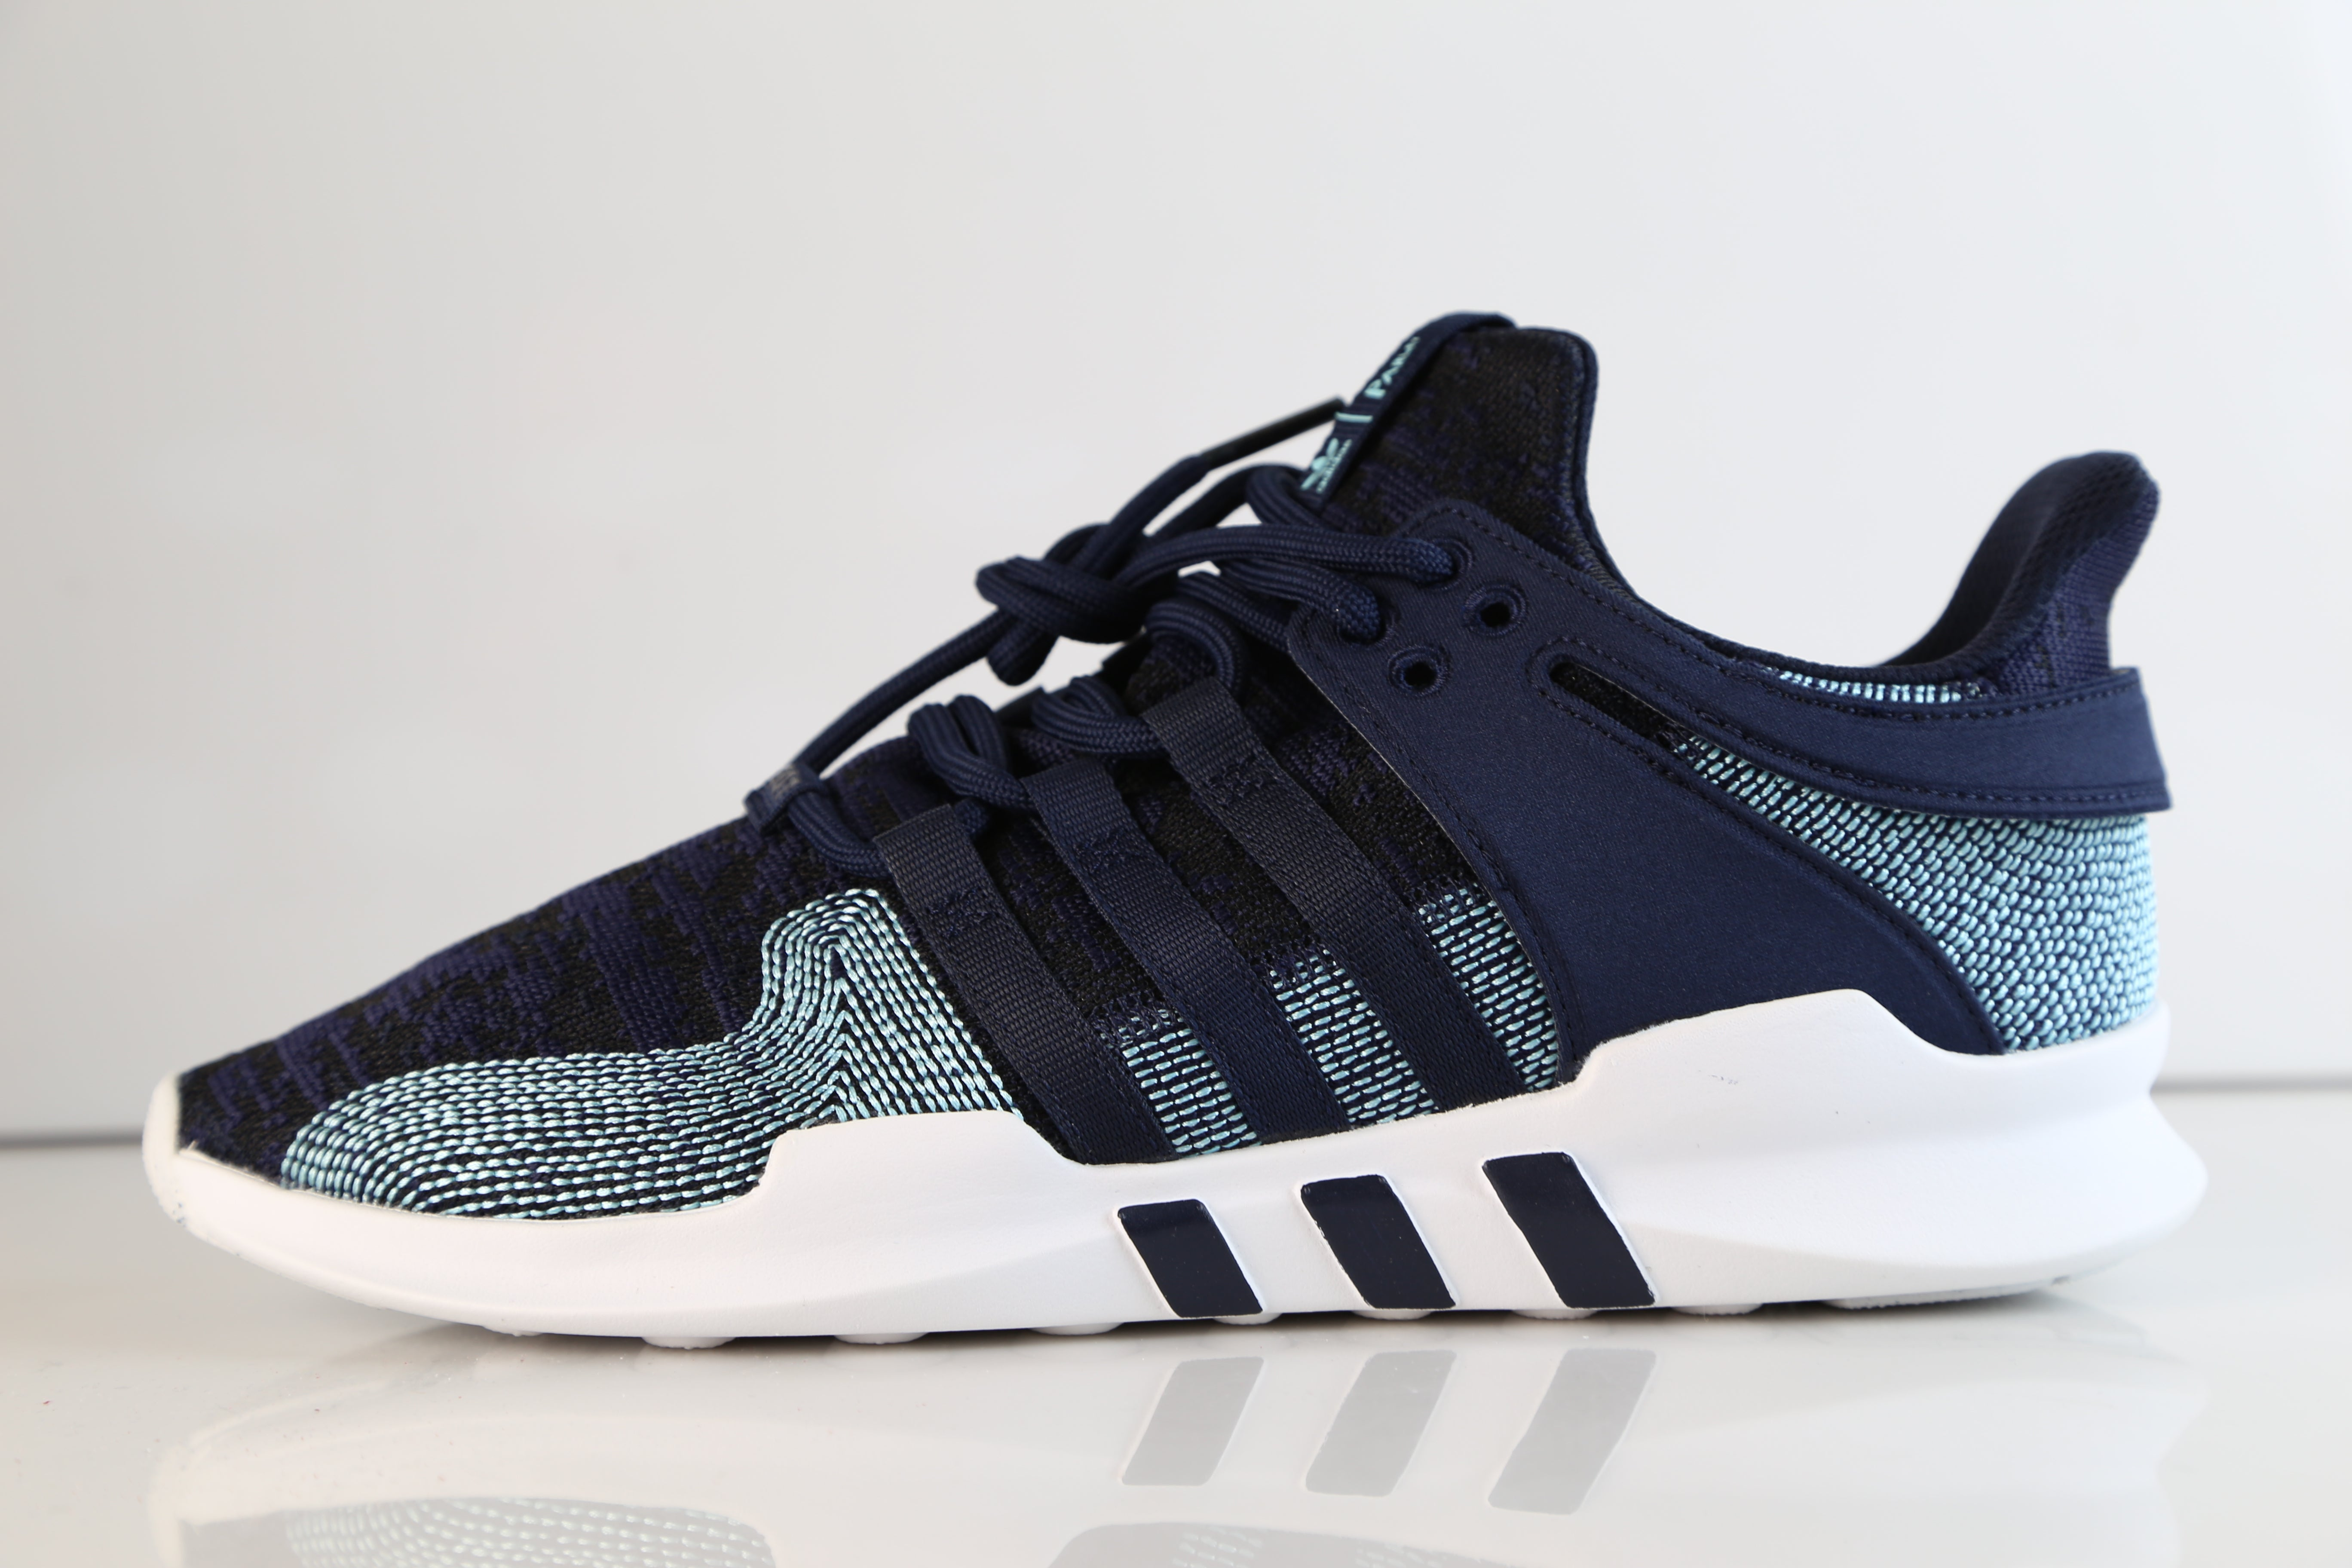 sports shoes 1855a ab2bd Adidas X Parley EQT Support ADV CK Ink Blue CQ0299 | Zadehkicks